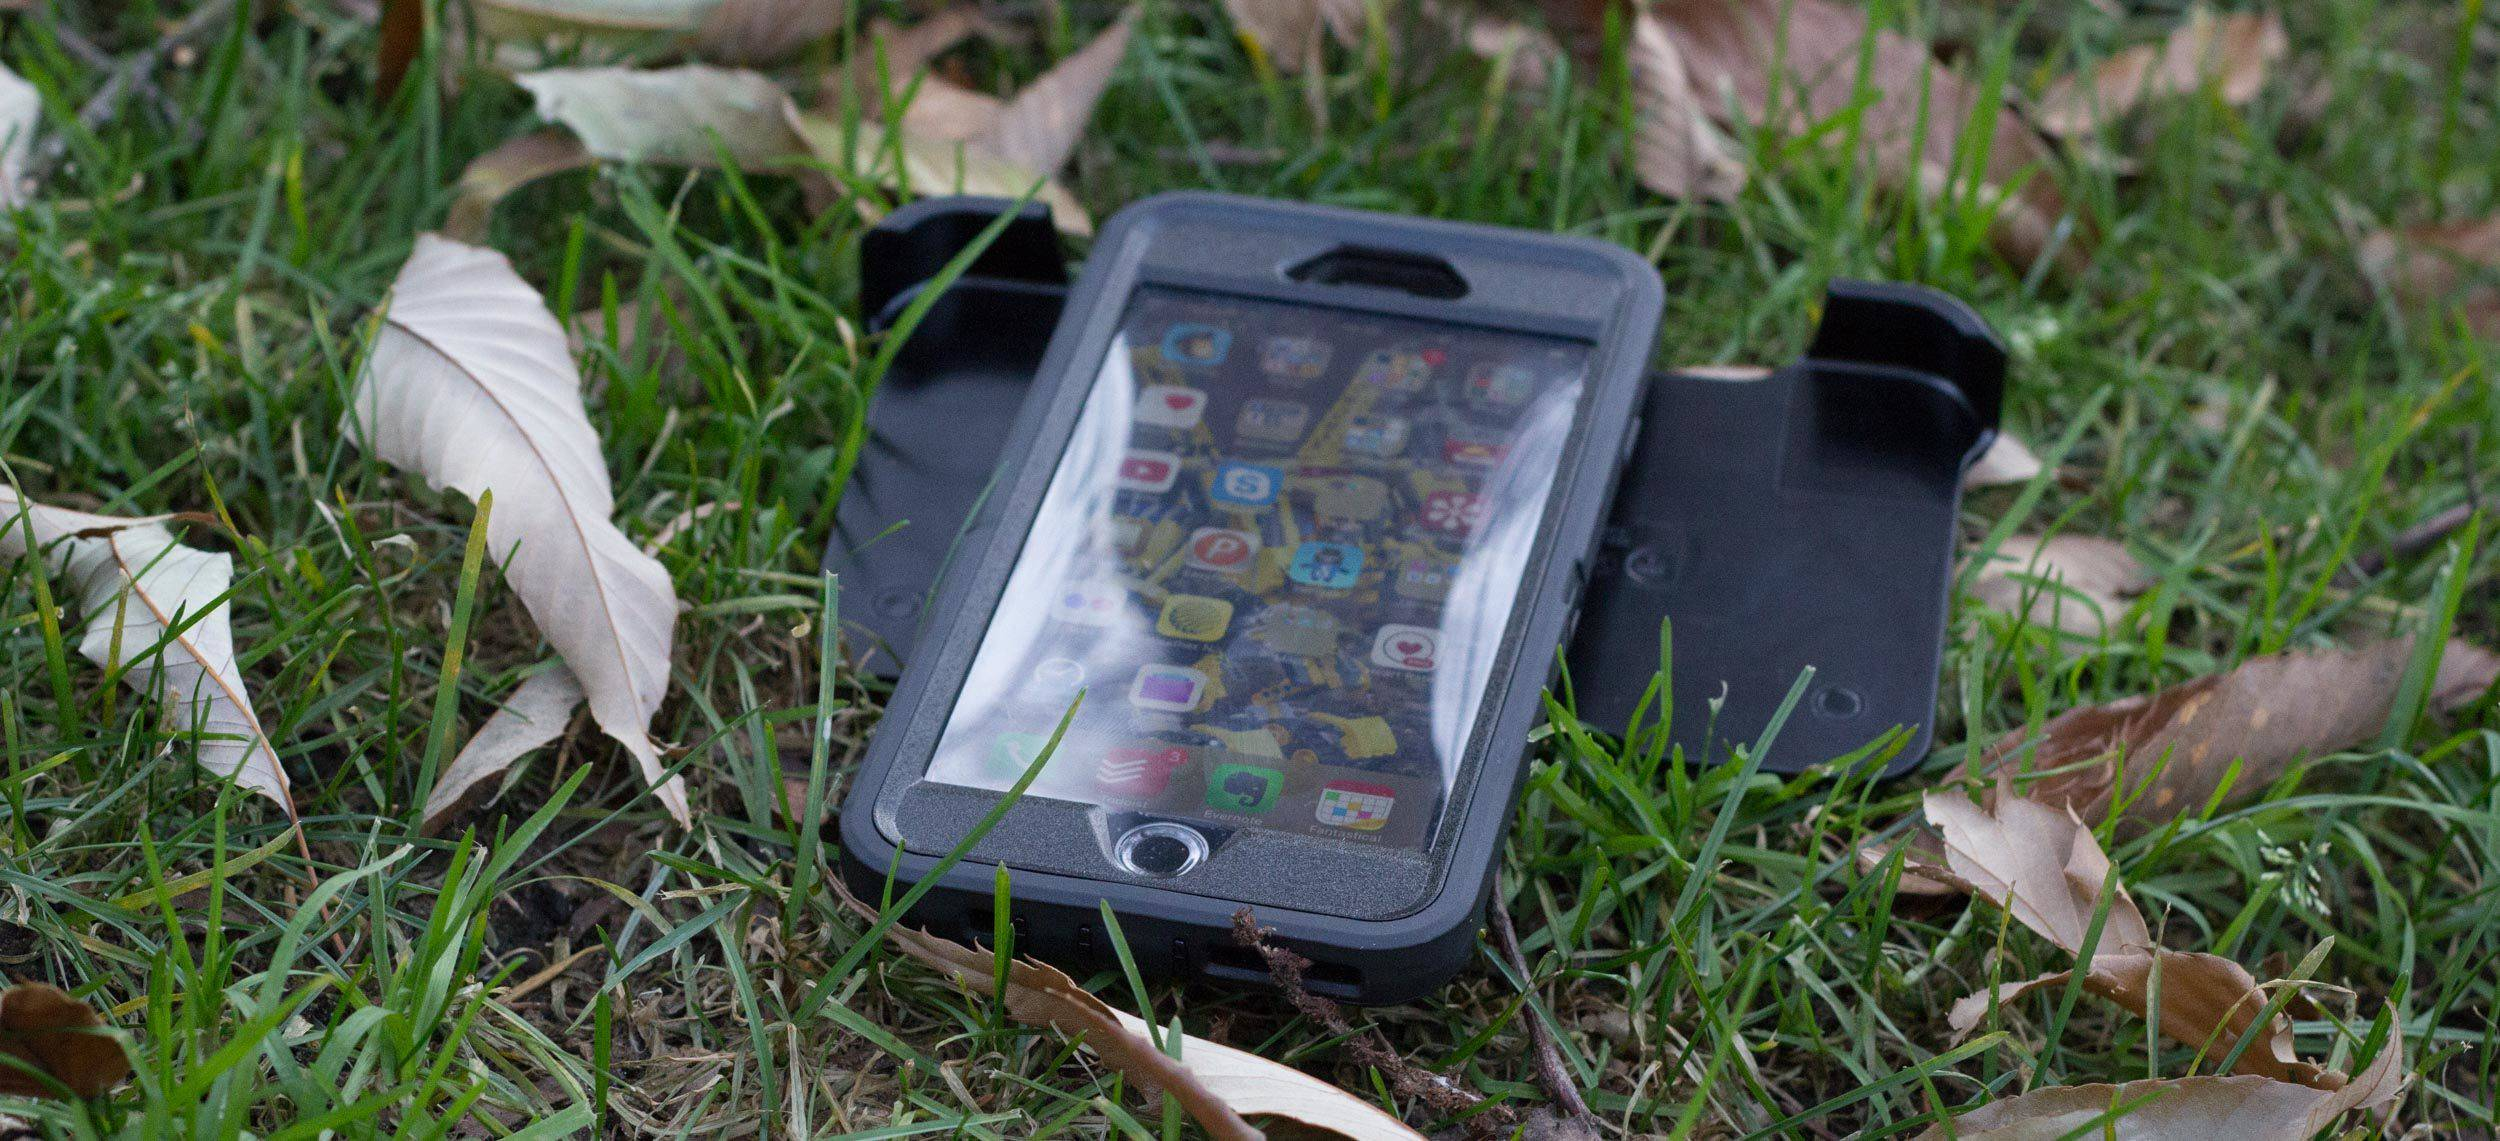 the best attitude 4c535 c5ec7 Reviewing the Otterbox Defender for iPhone 6s Plus - It's Quality Gear